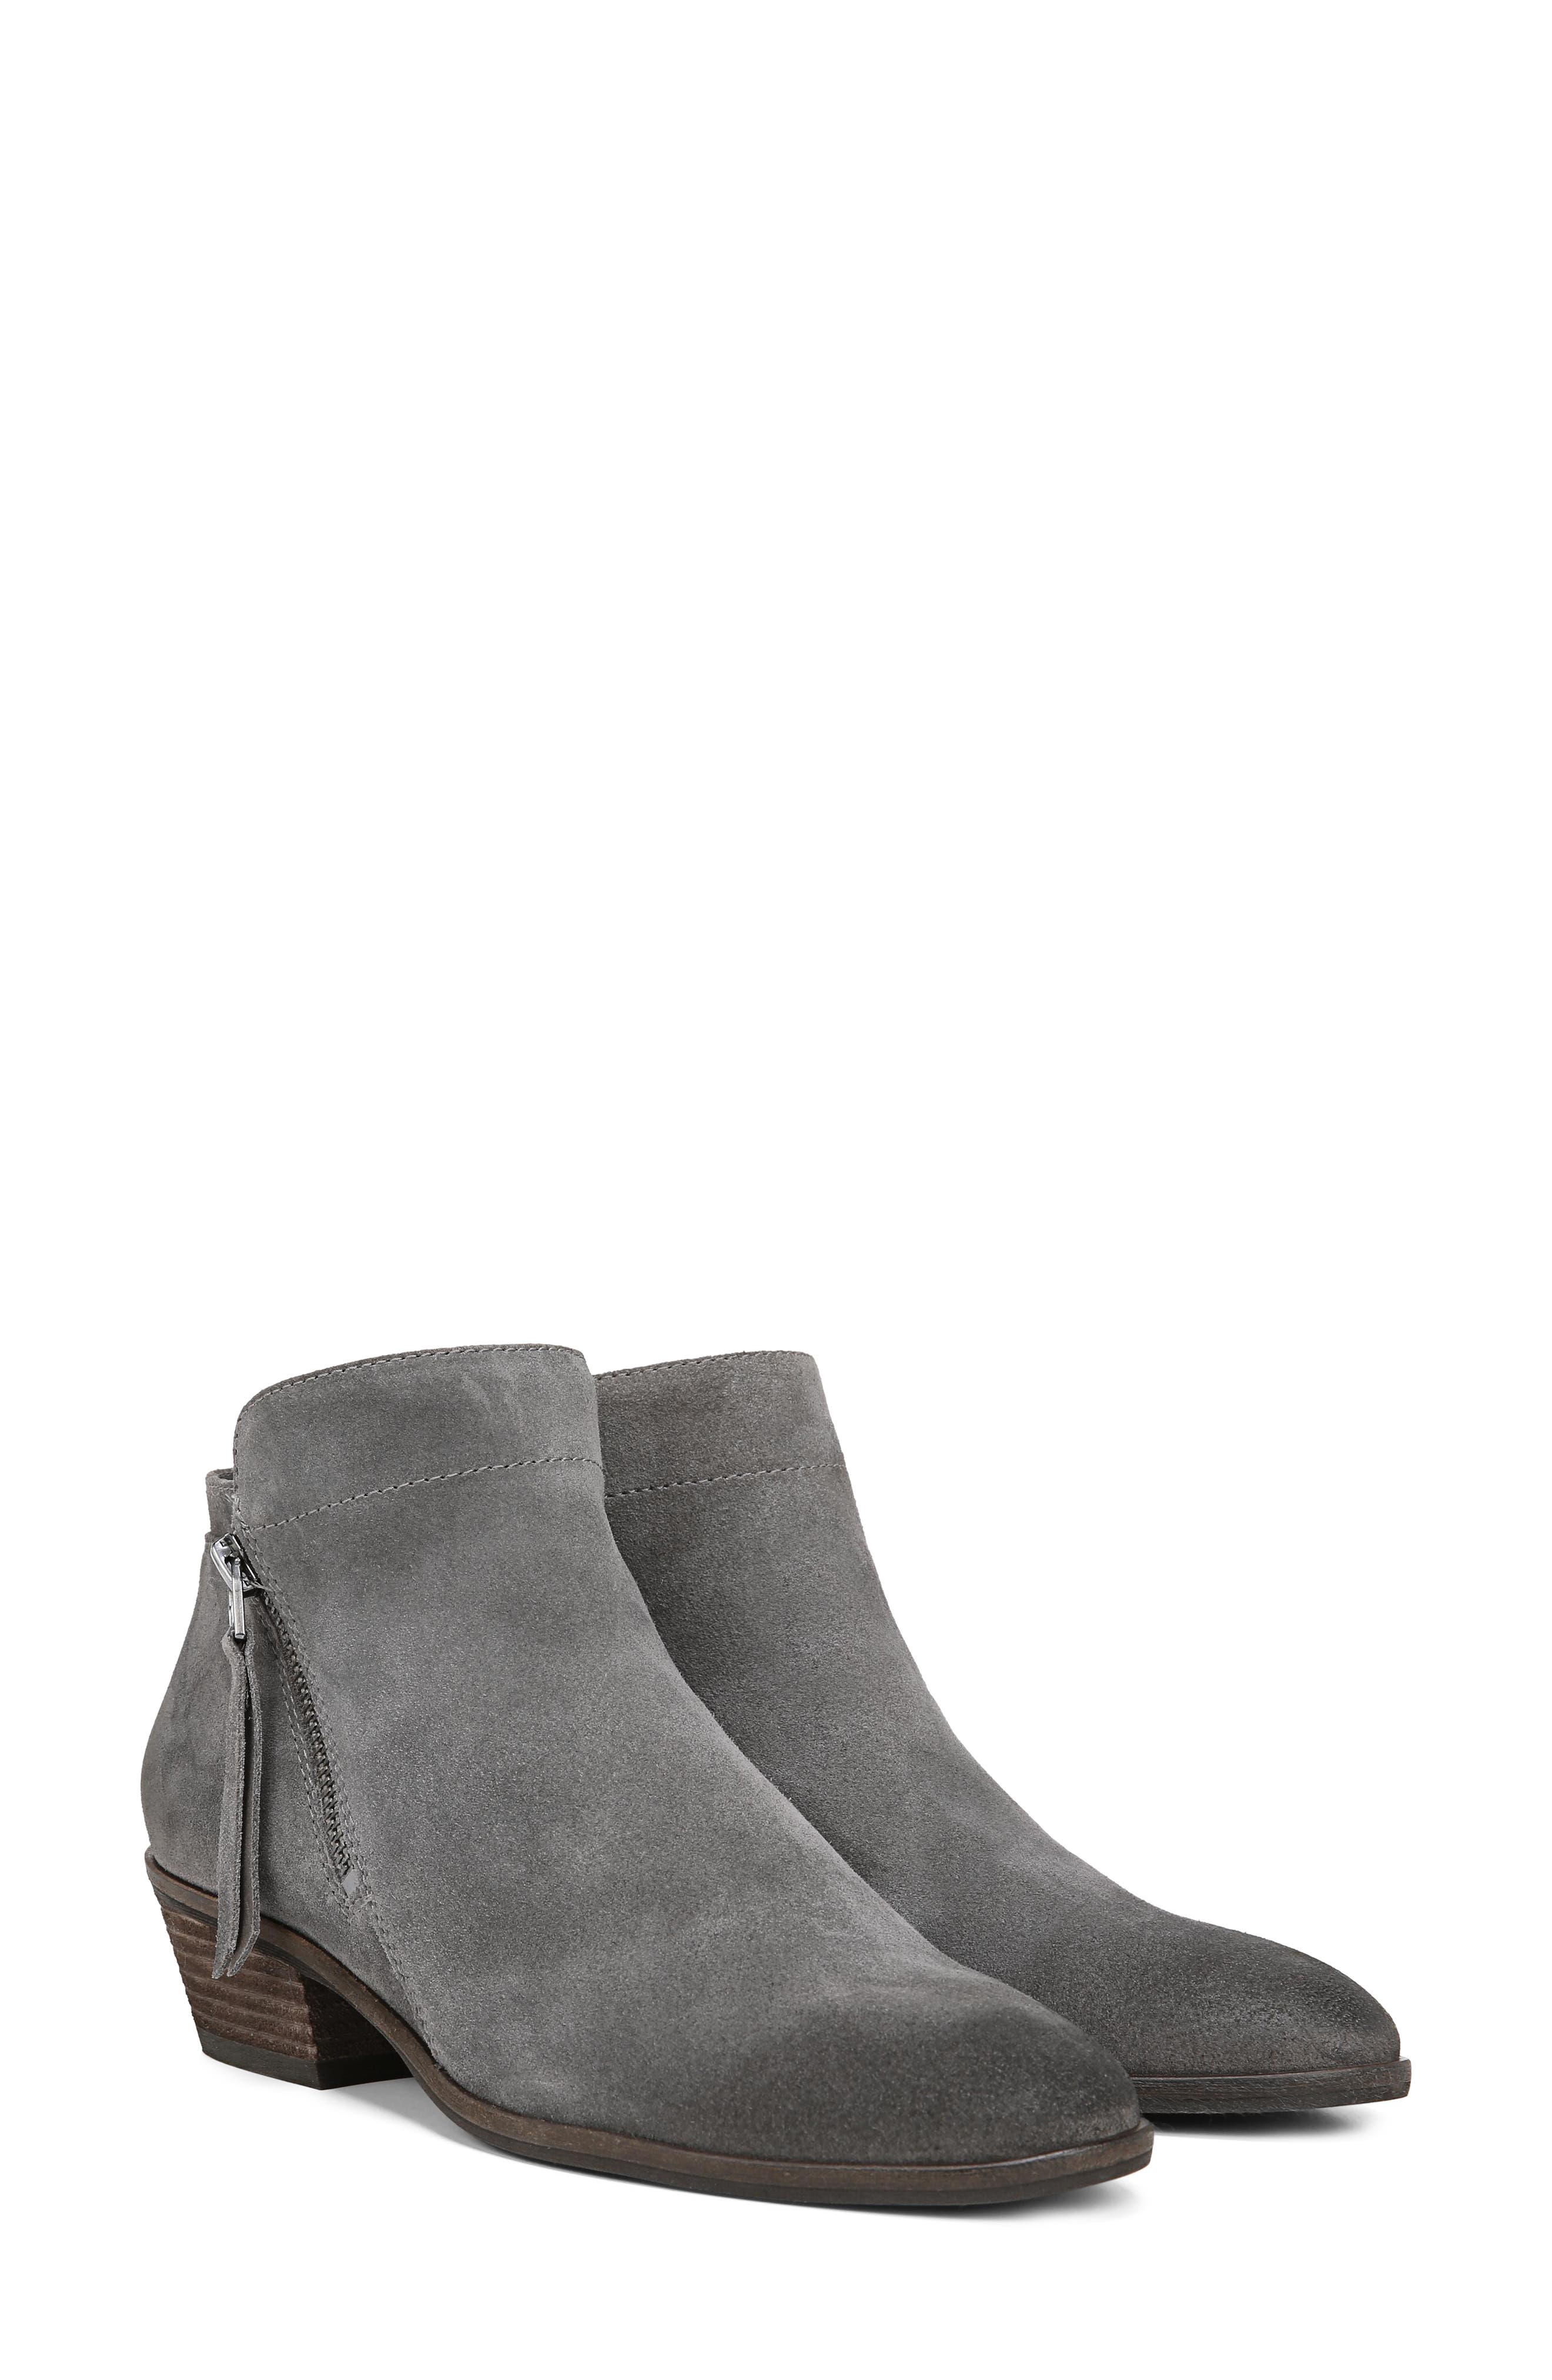 Packer Bootie,                             Alternate thumbnail 9, color,                             STEEL GREY SUEDE LEATHER